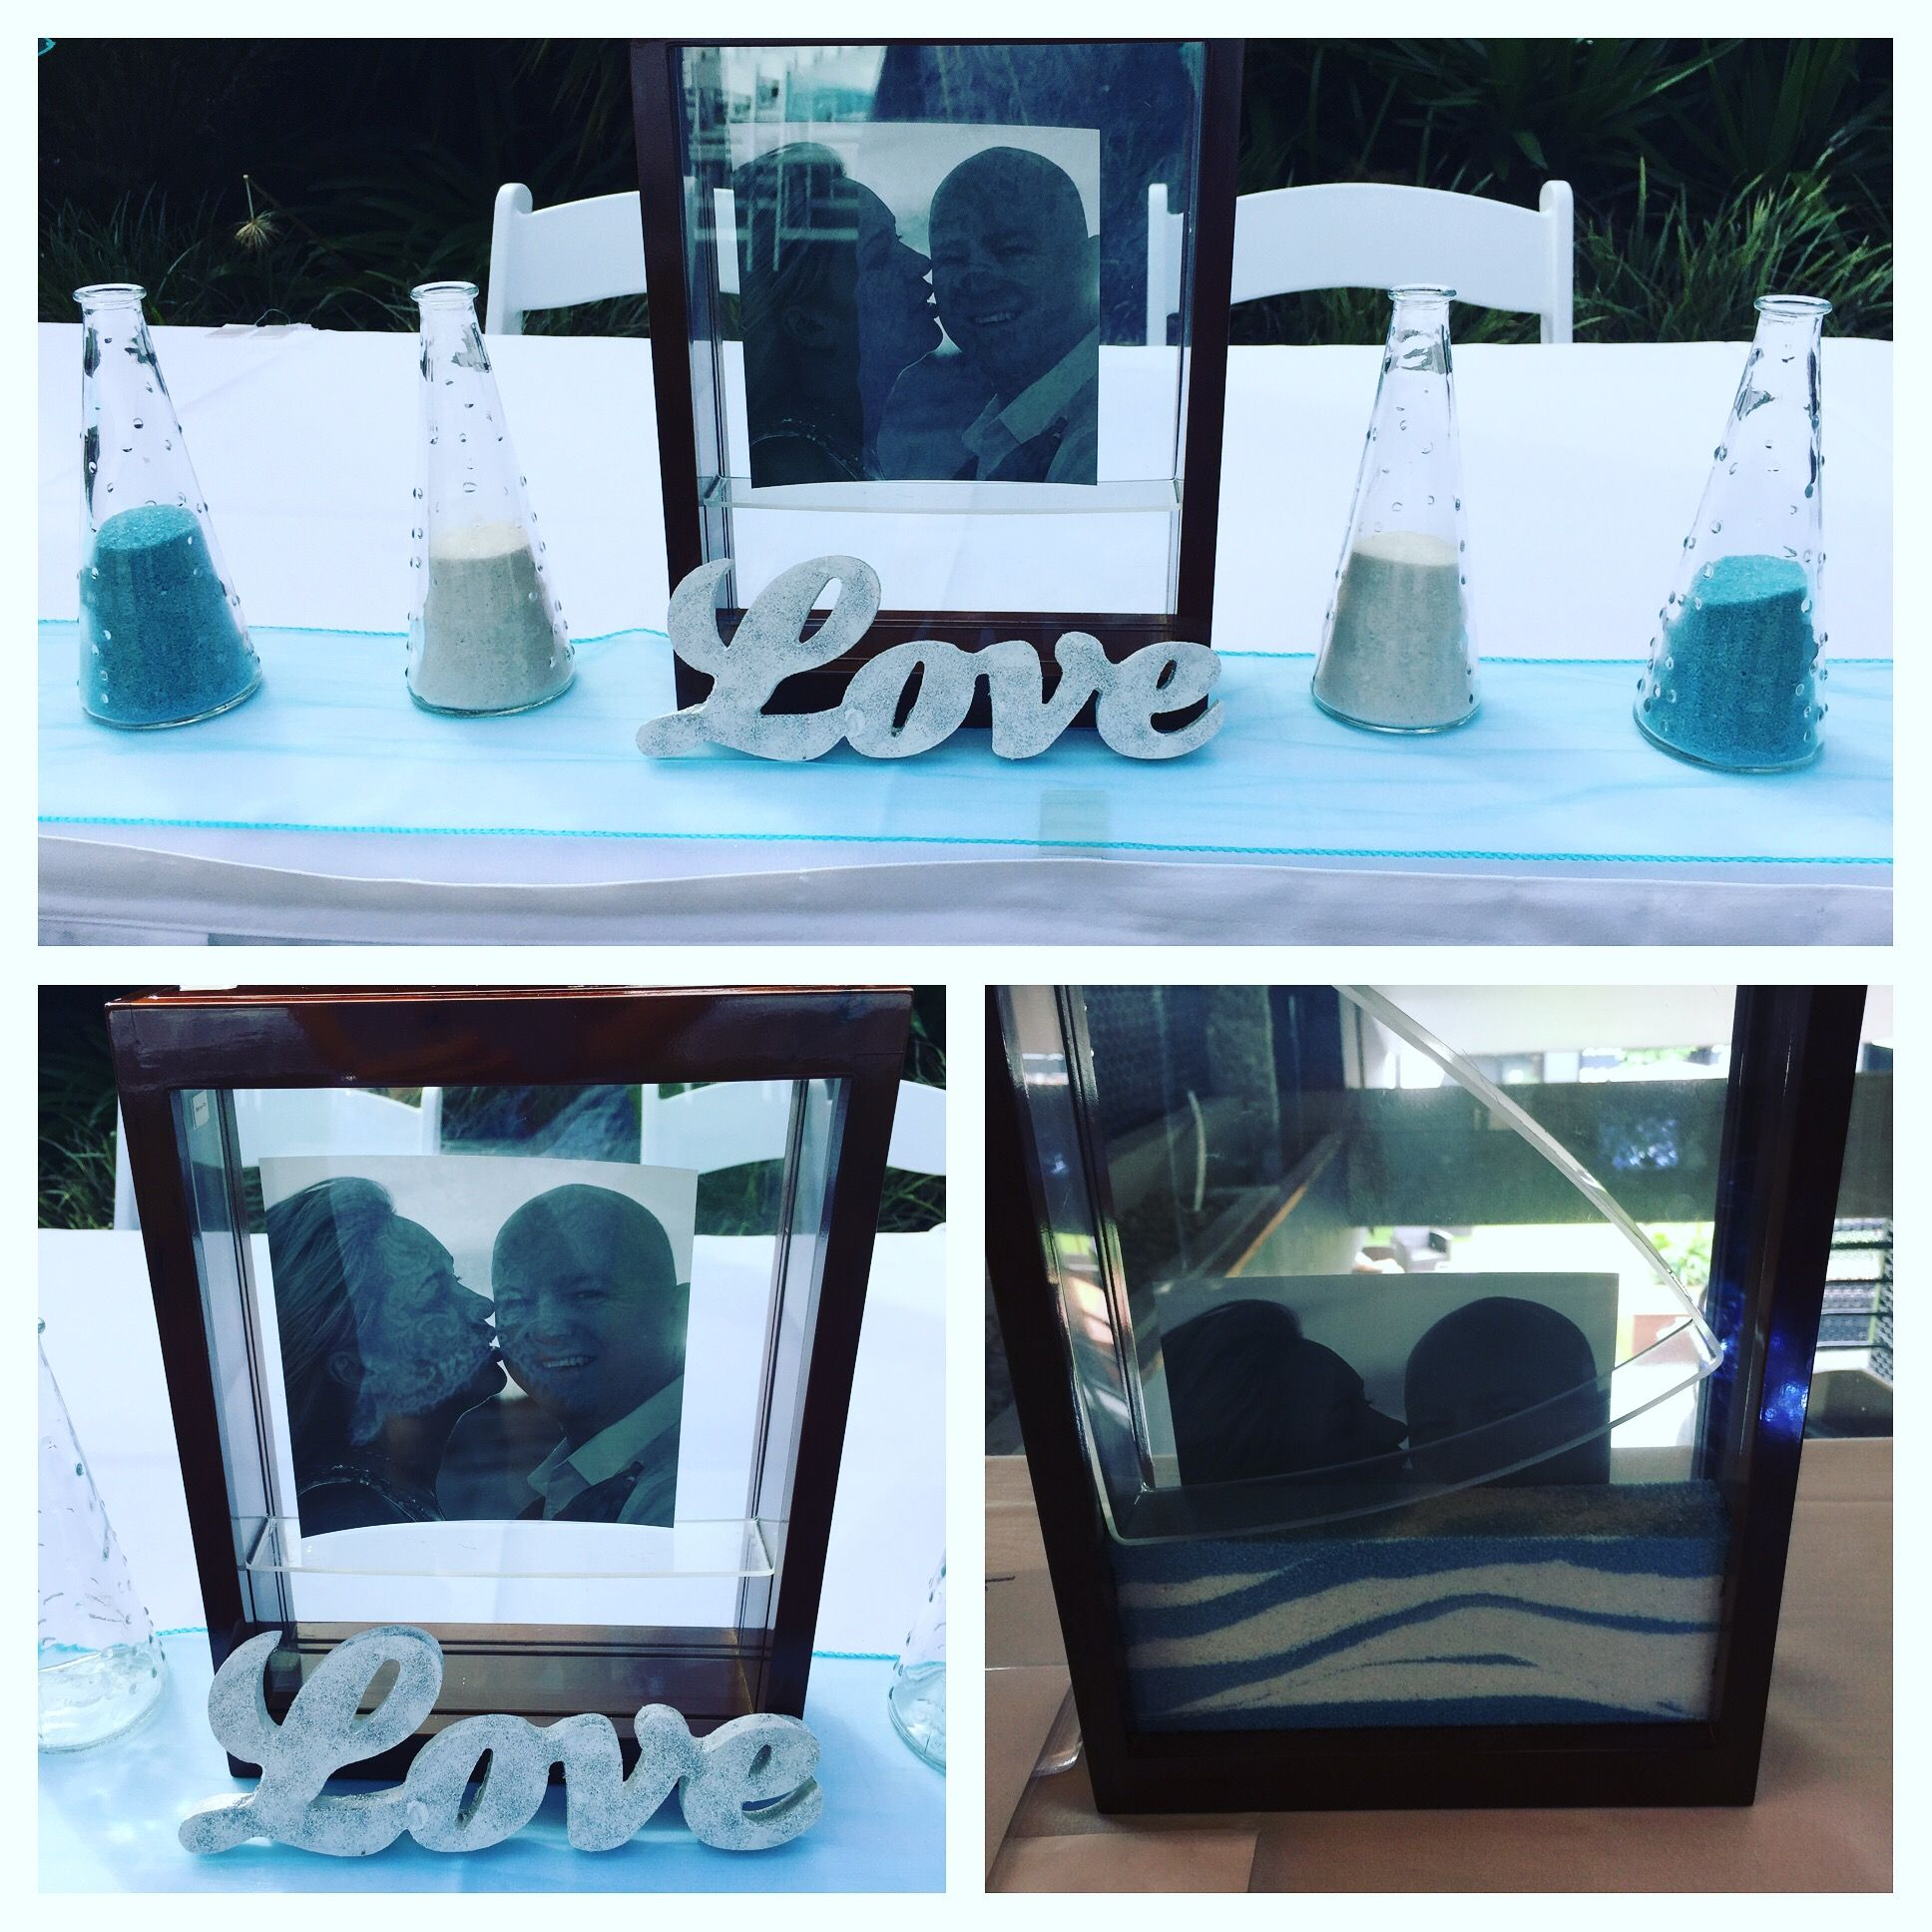 Sand ceremony in picture frame